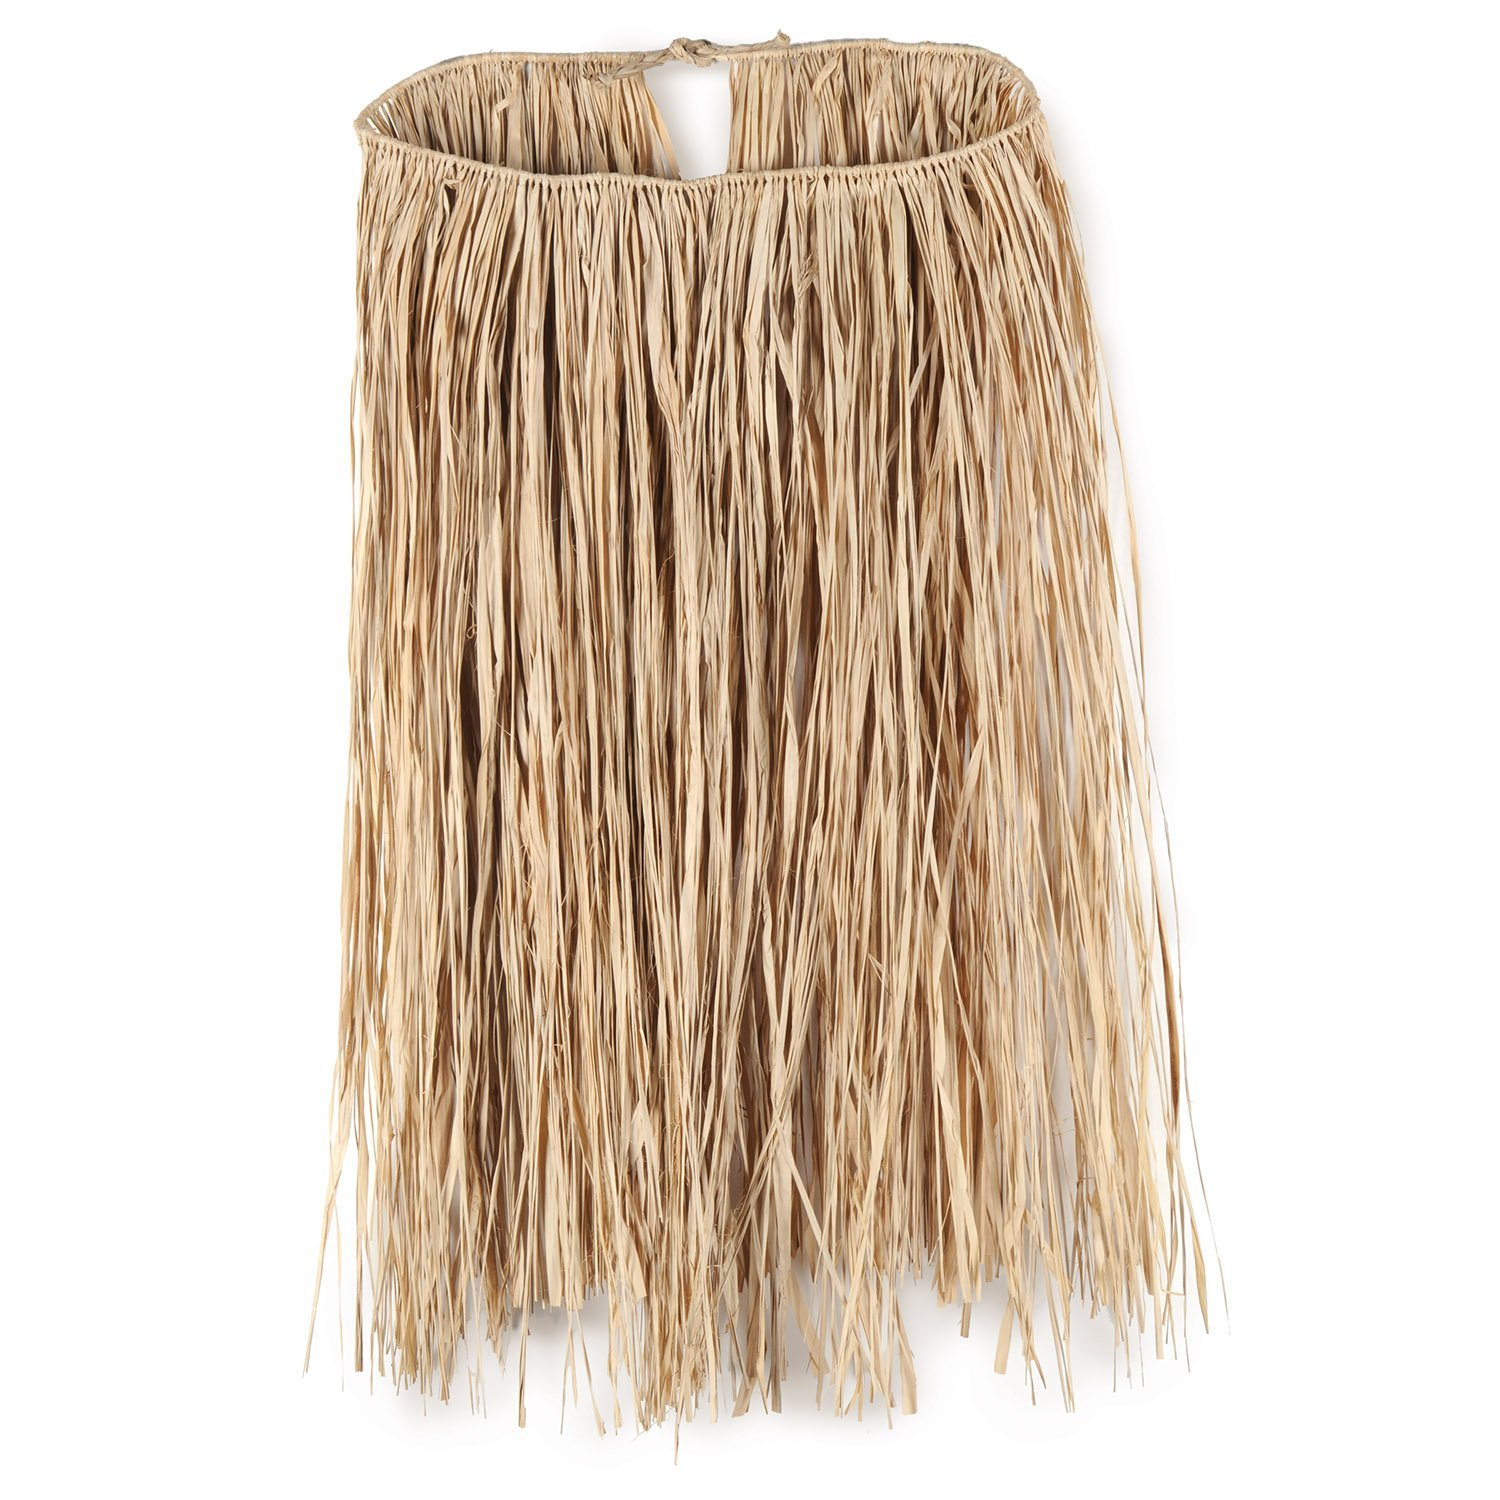 Adult Raffia Hula Skirt (natural) Party Accessory (1 count) (1/Pkg)